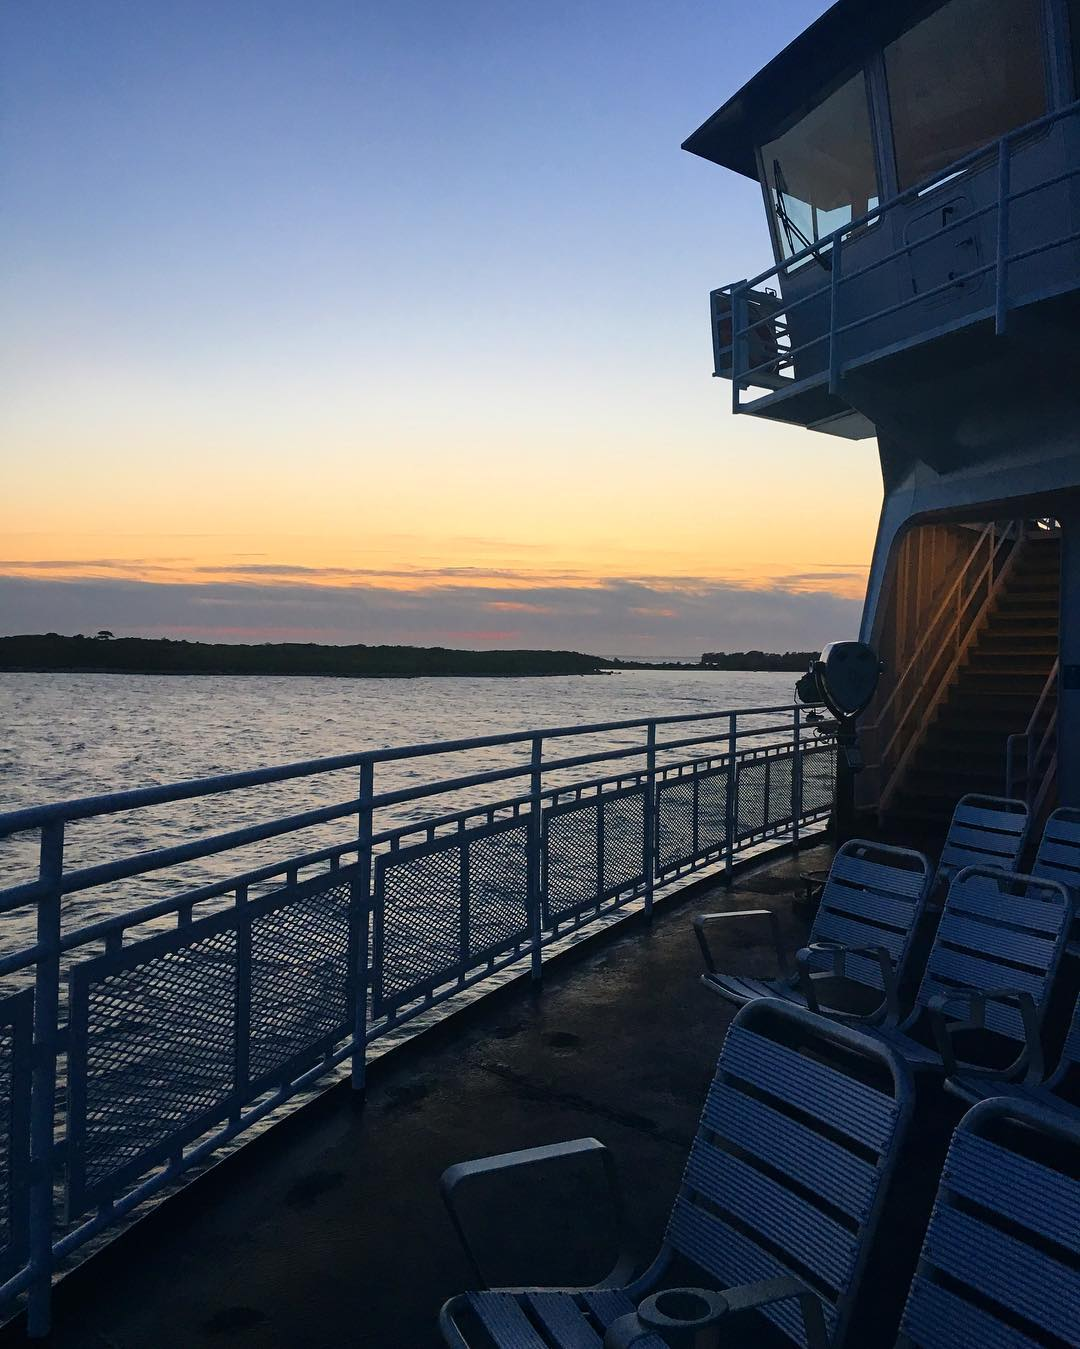 First time in the East Coast visiting Martha's Vineyard! I've already fallen in love with the sunsets #travel #traveler #traveling #explore #sunset #marthasvineyard #eastcoast #adventure #ferry #woodsholeferry #vineyardhaven #roadtrip #nature #beauty...